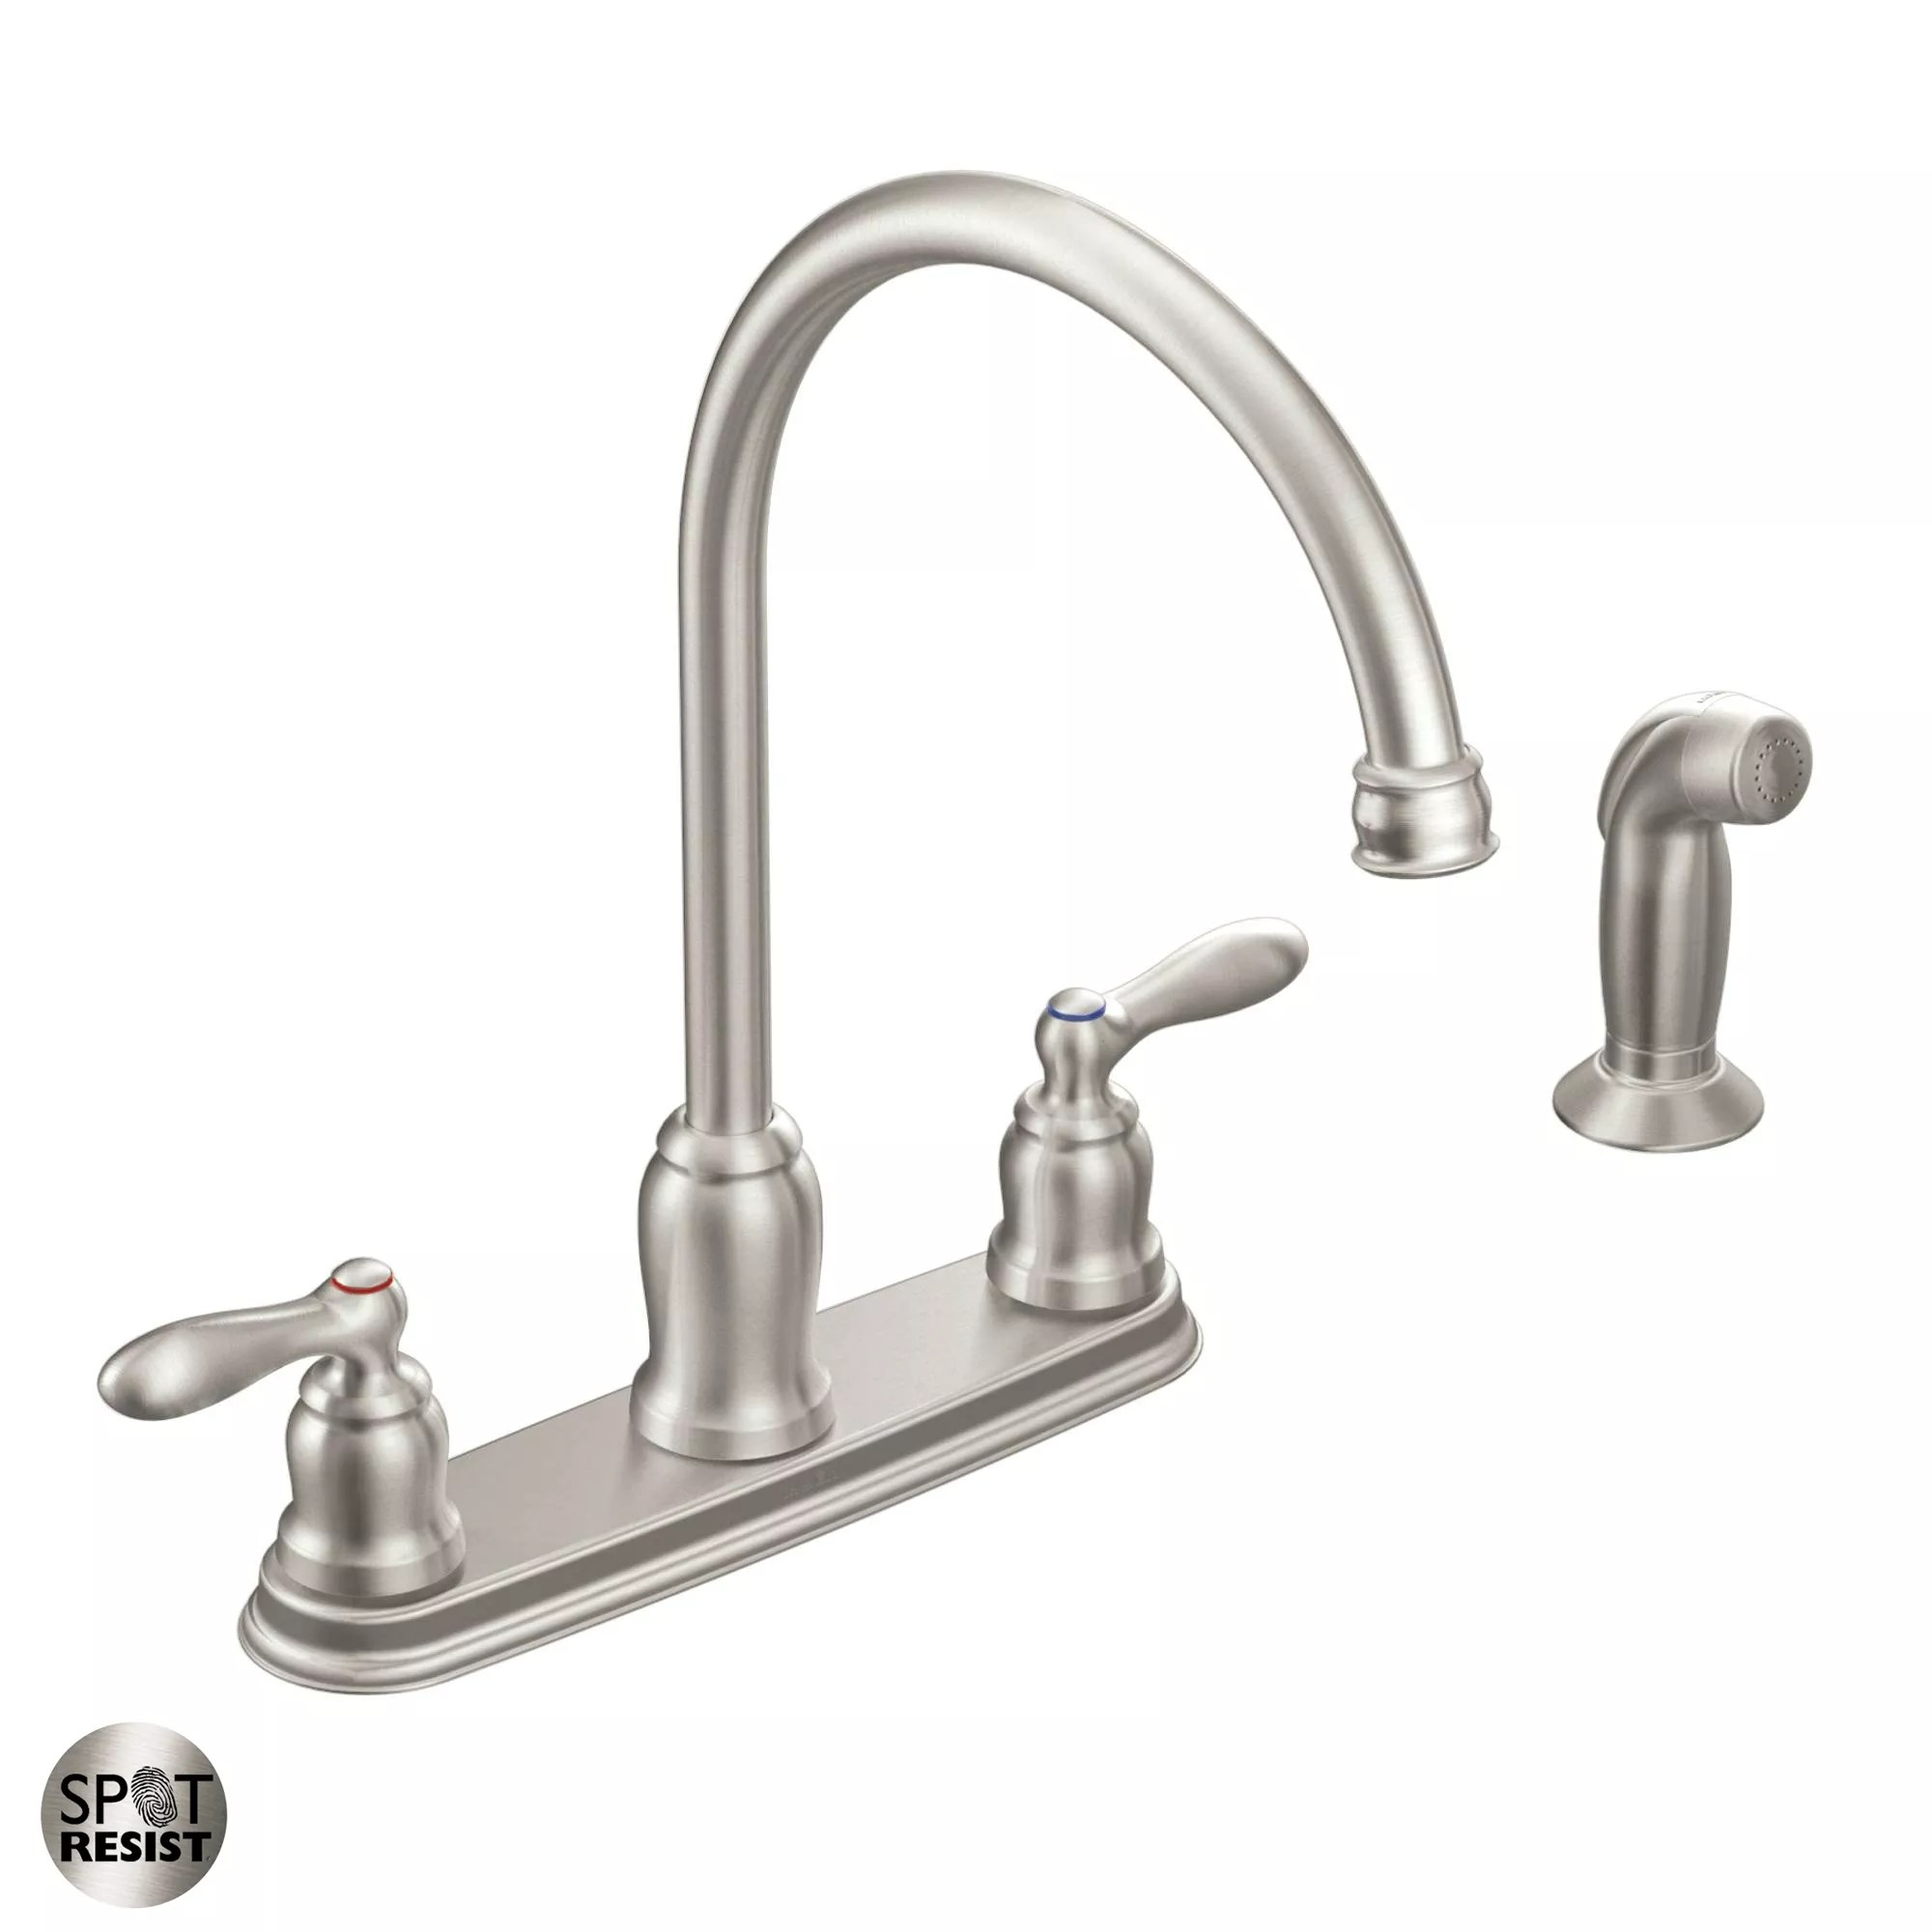 moen faucet kitchen farm table ca87060srs spot resist stainless high arc with